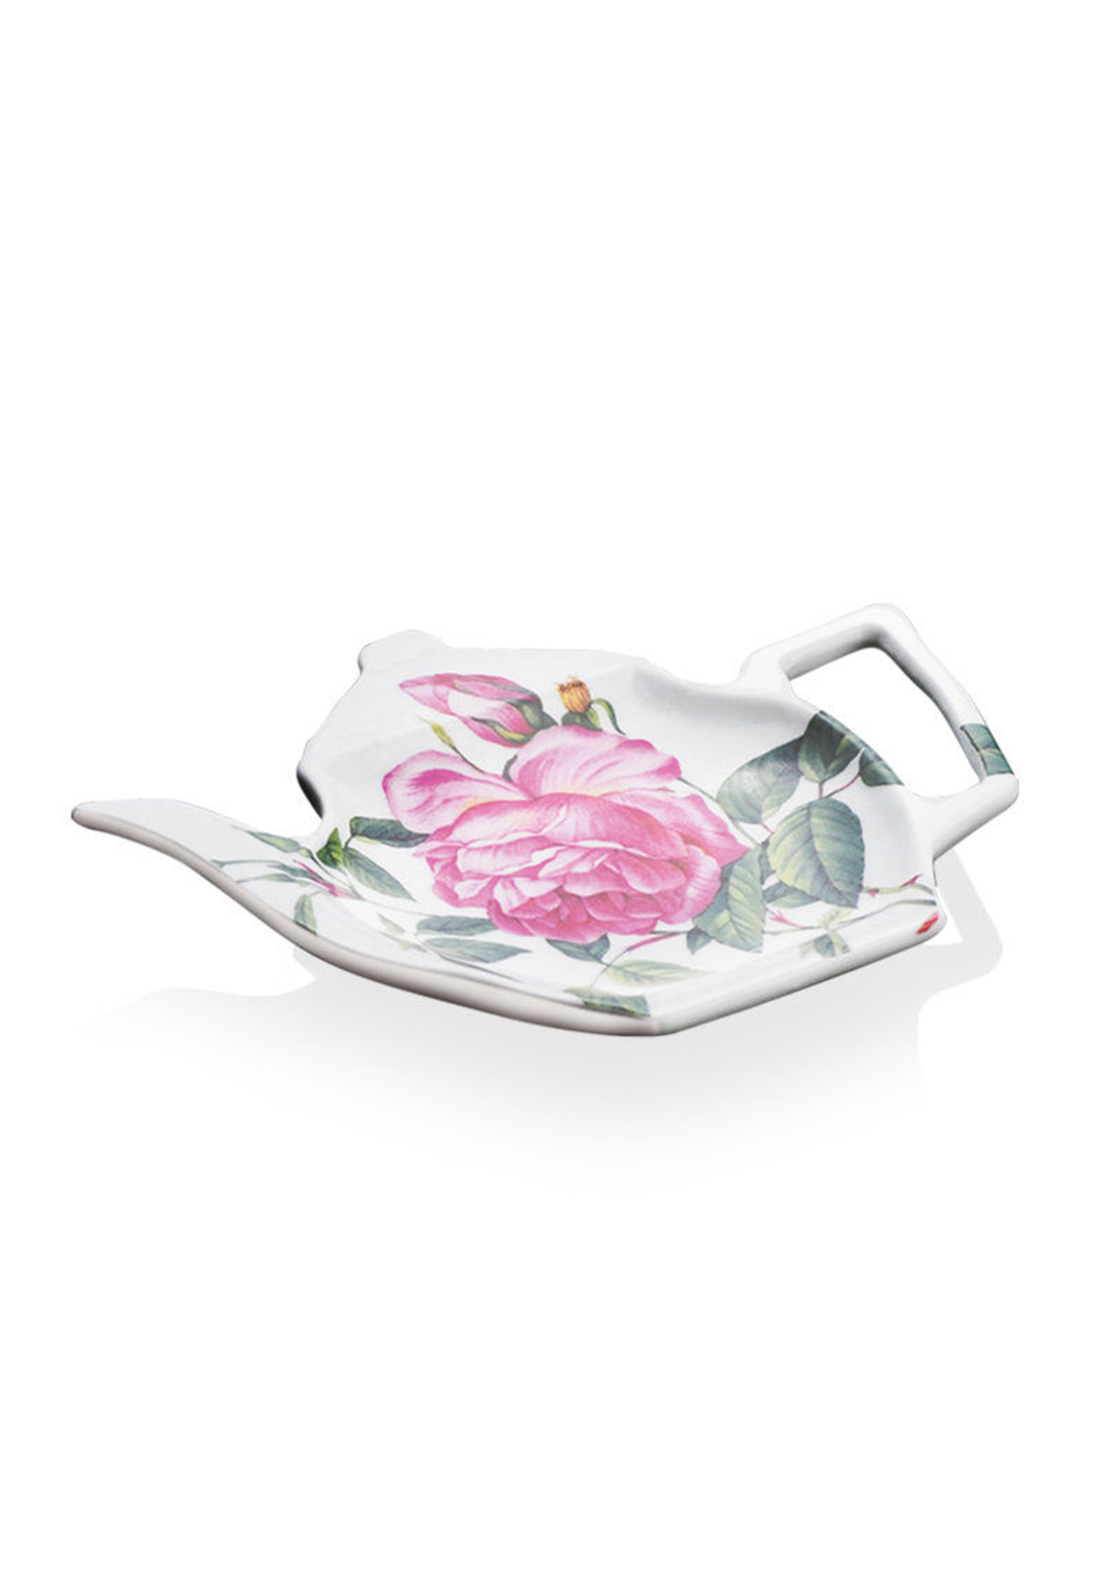 Newbridge Home Rose Tea Bag Holder